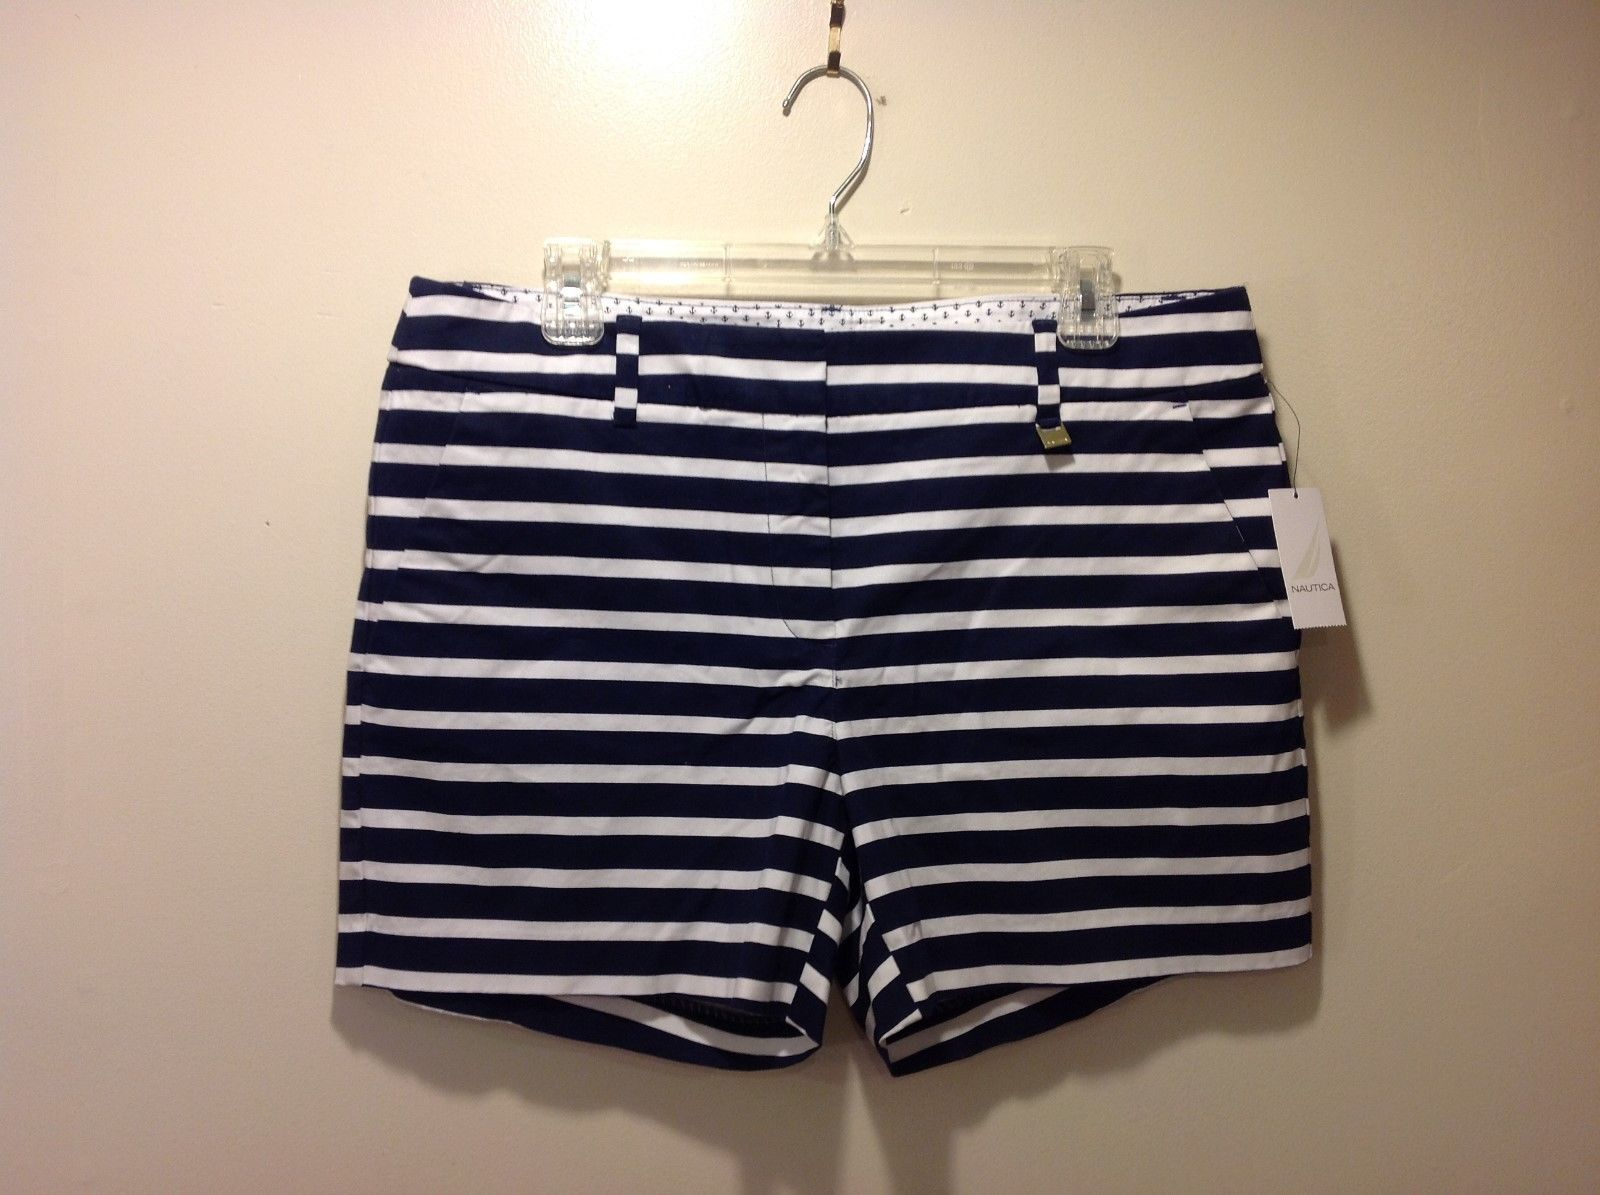 NEW Ladies Blue White Striped Summer Shorts by Nautica Sz 12